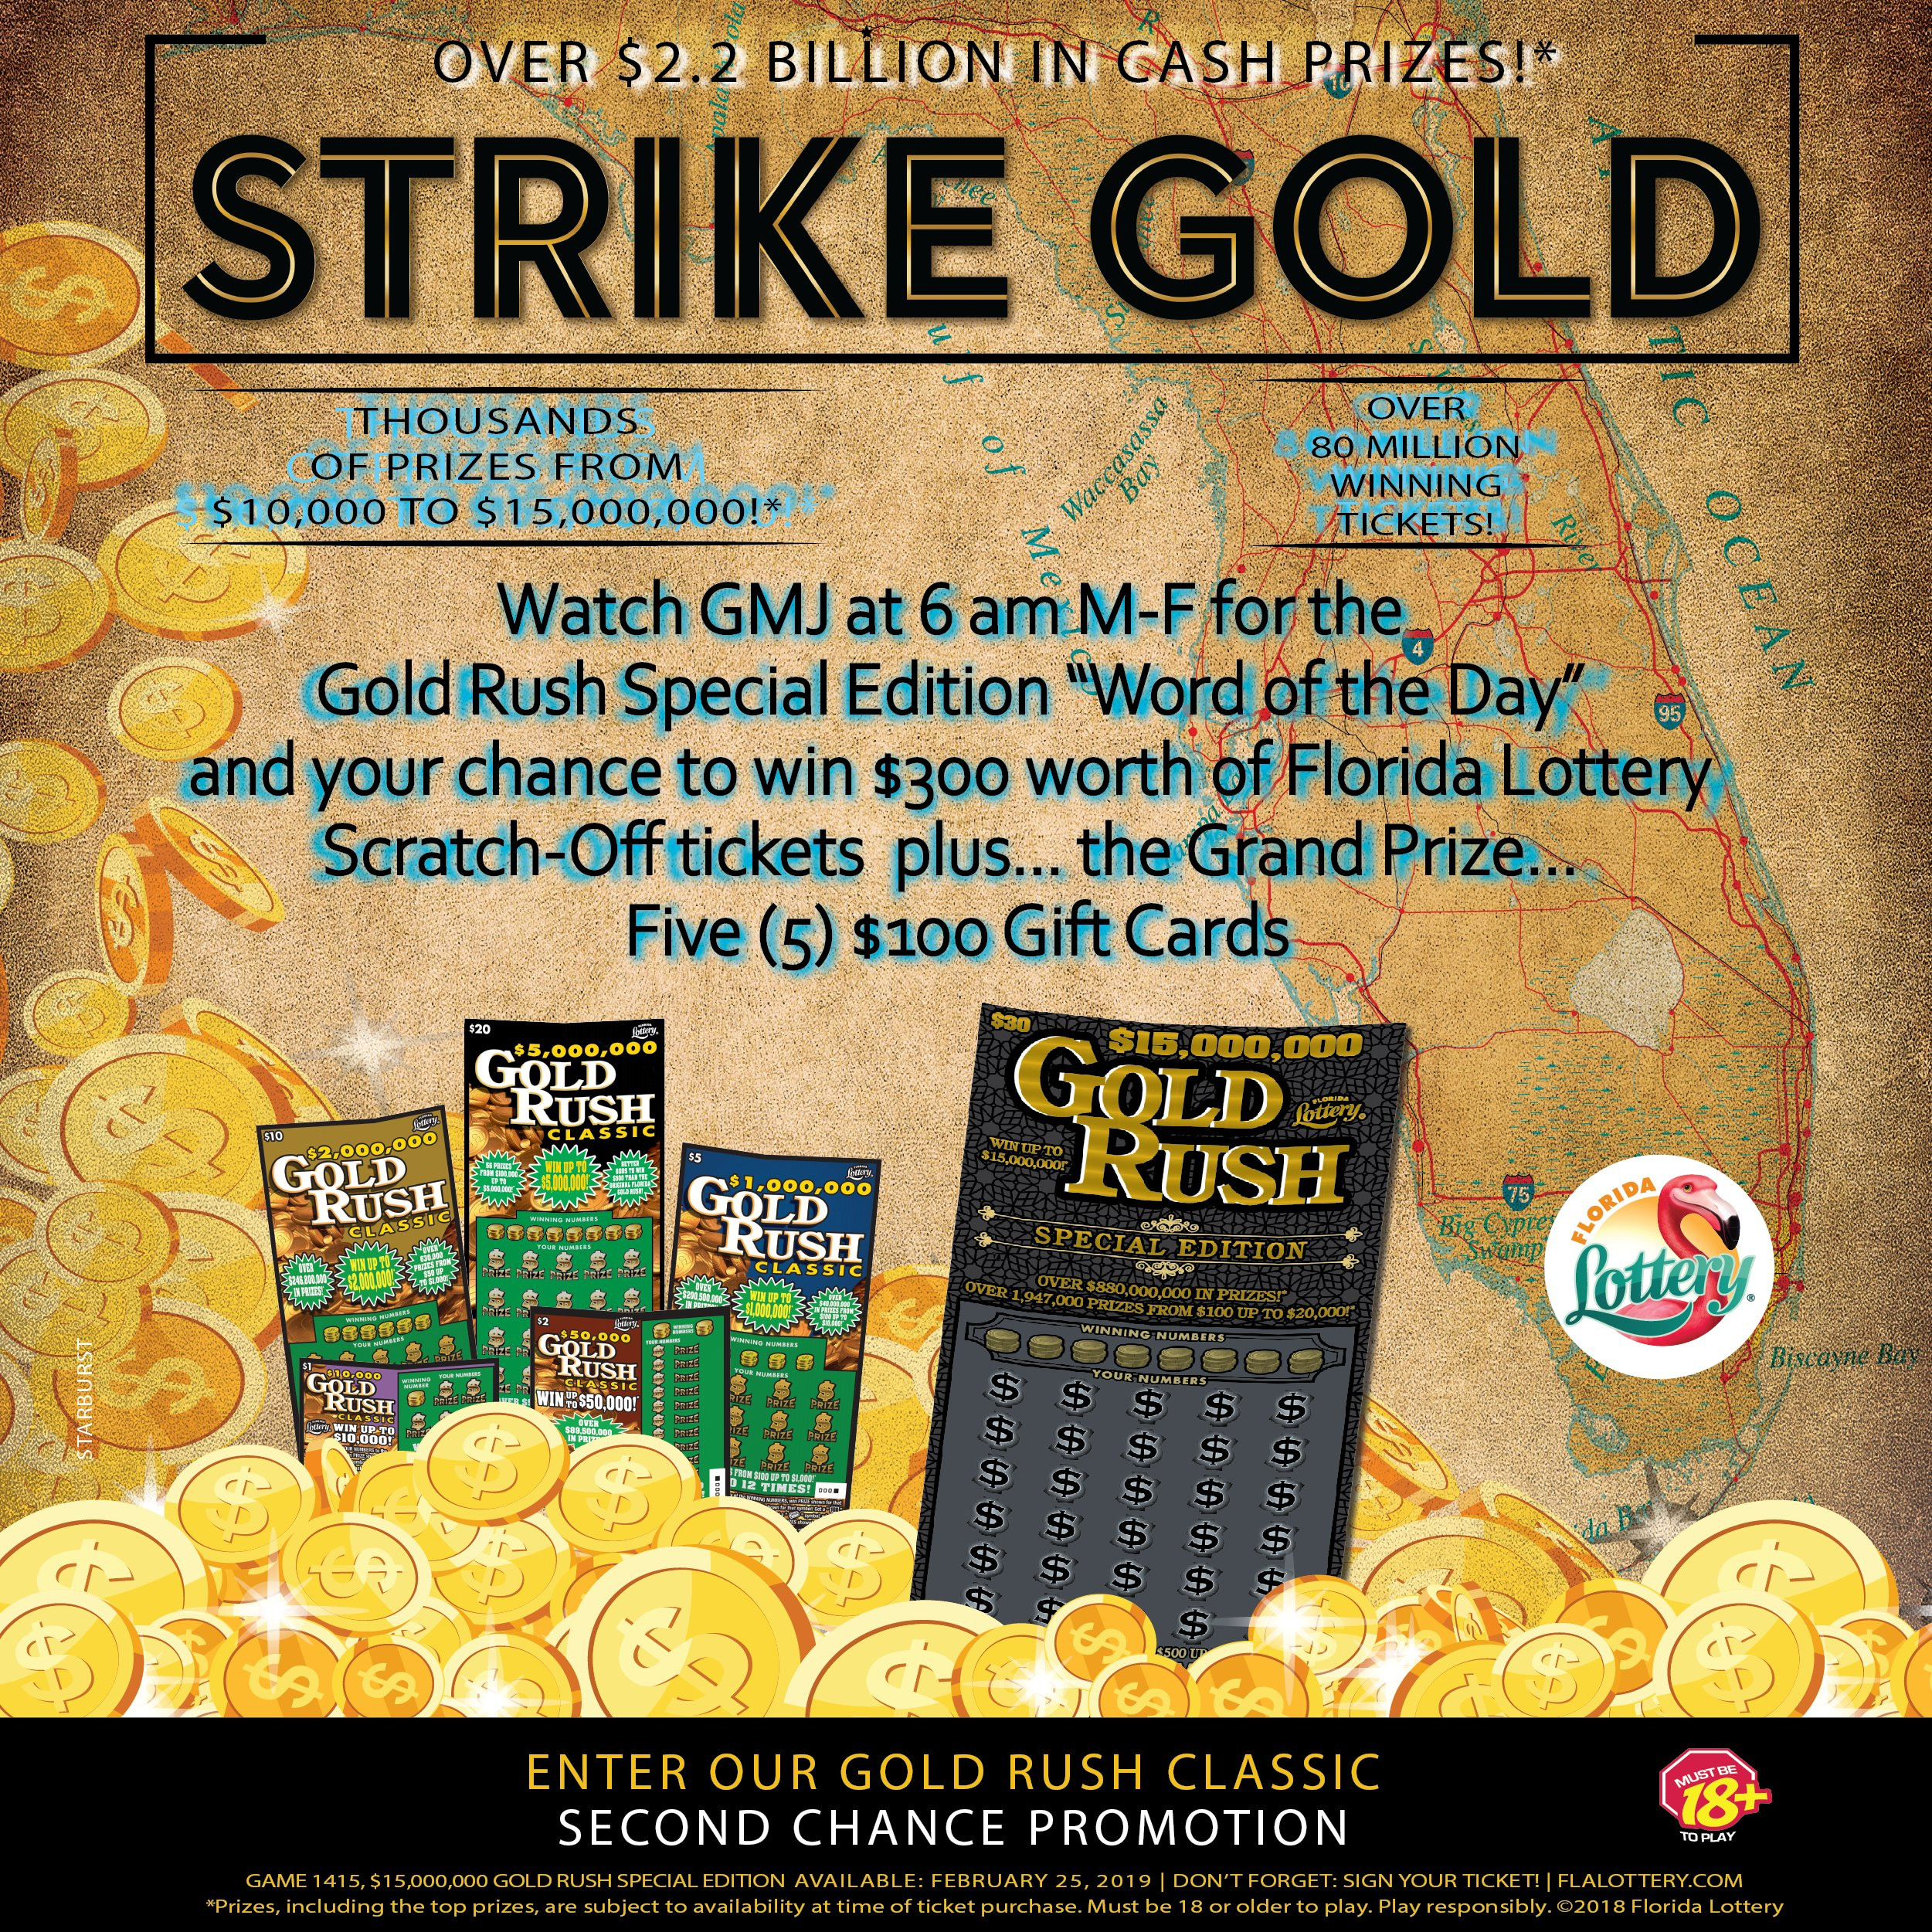 The Florida Lottery & WTLV/WJXX Gold Rush Special Edition